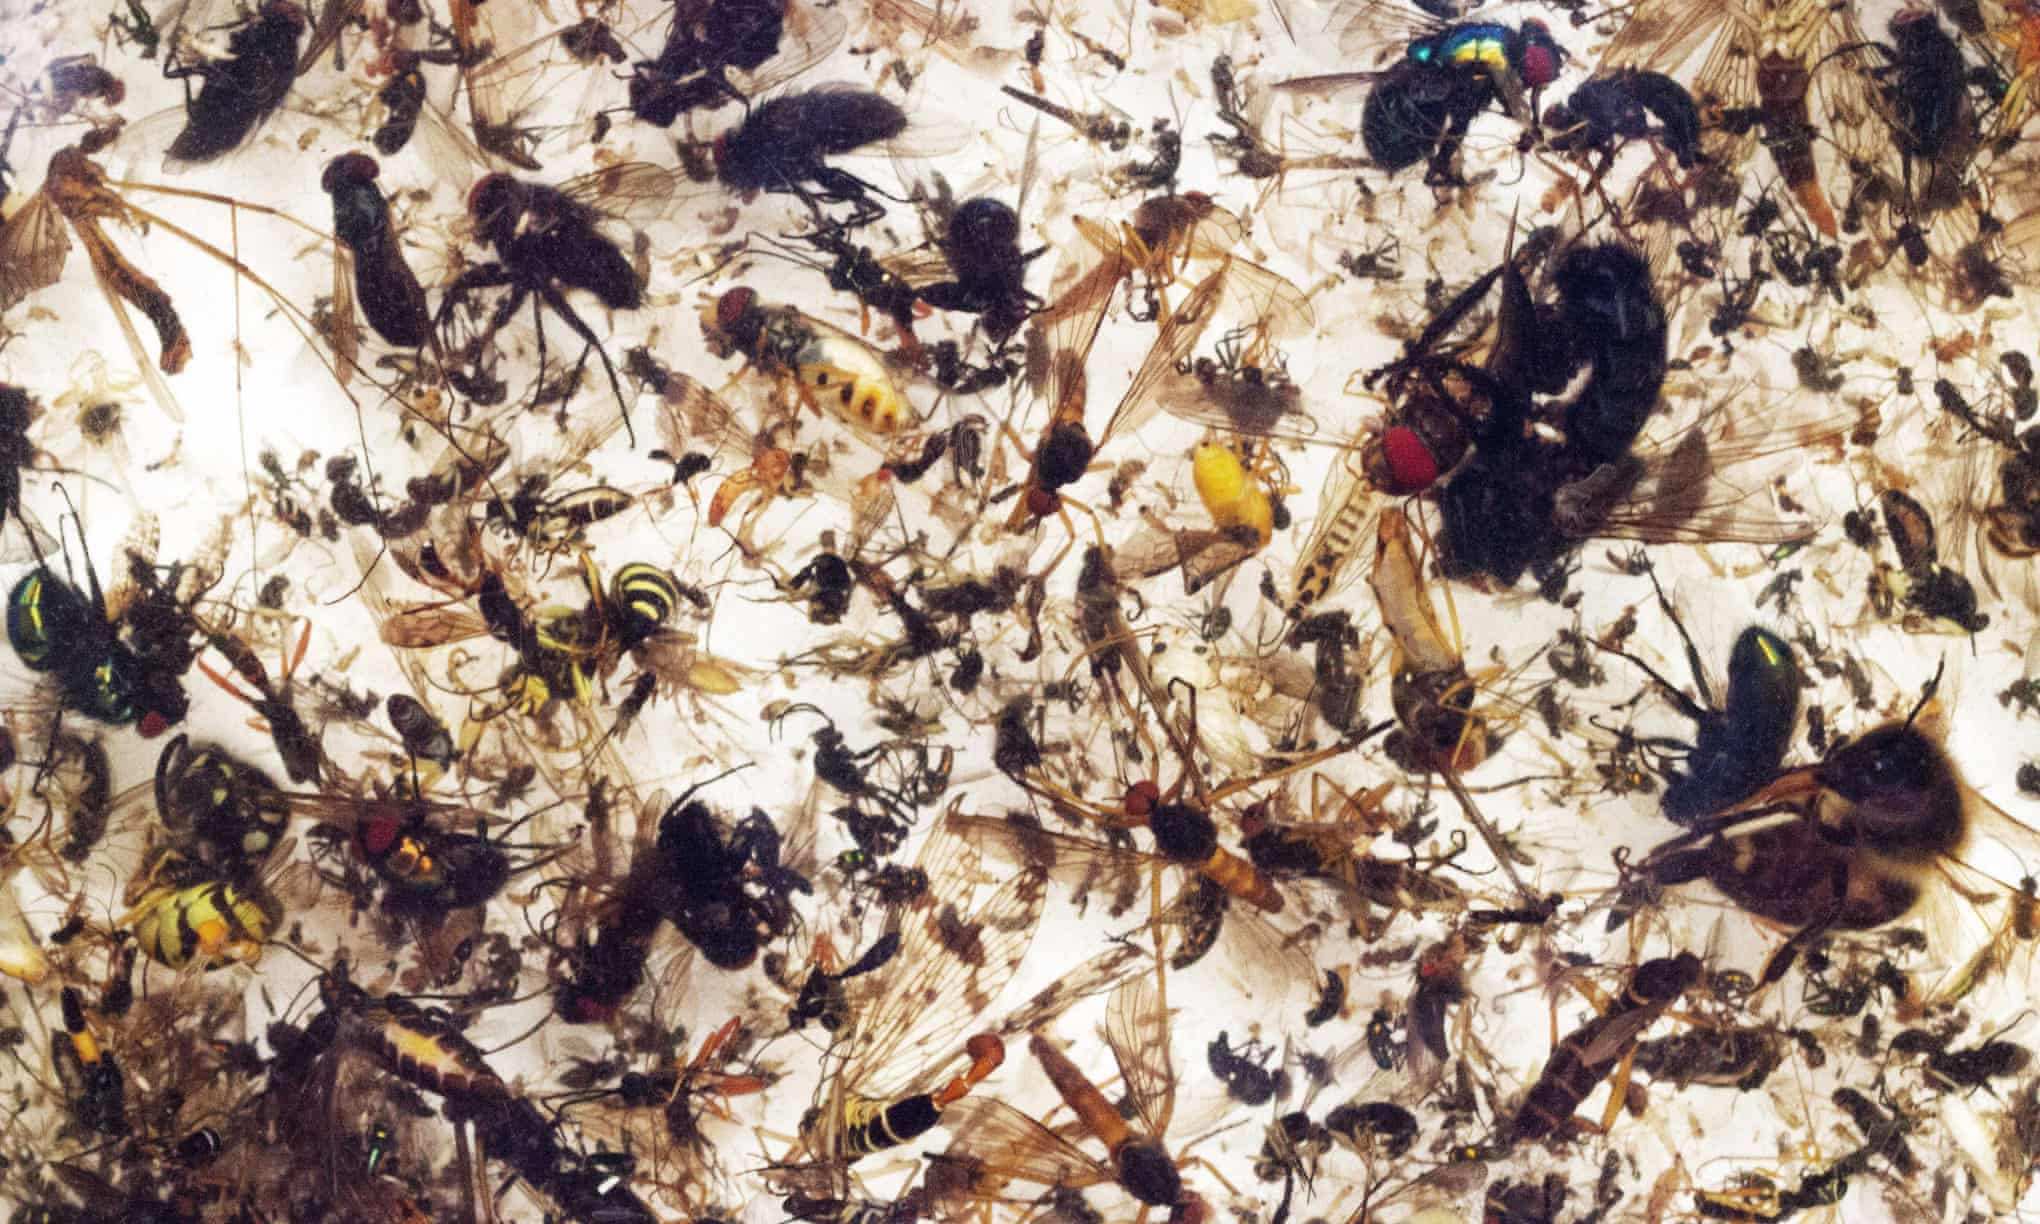 Plummeting insect numbers 'threaten collapse of nature'